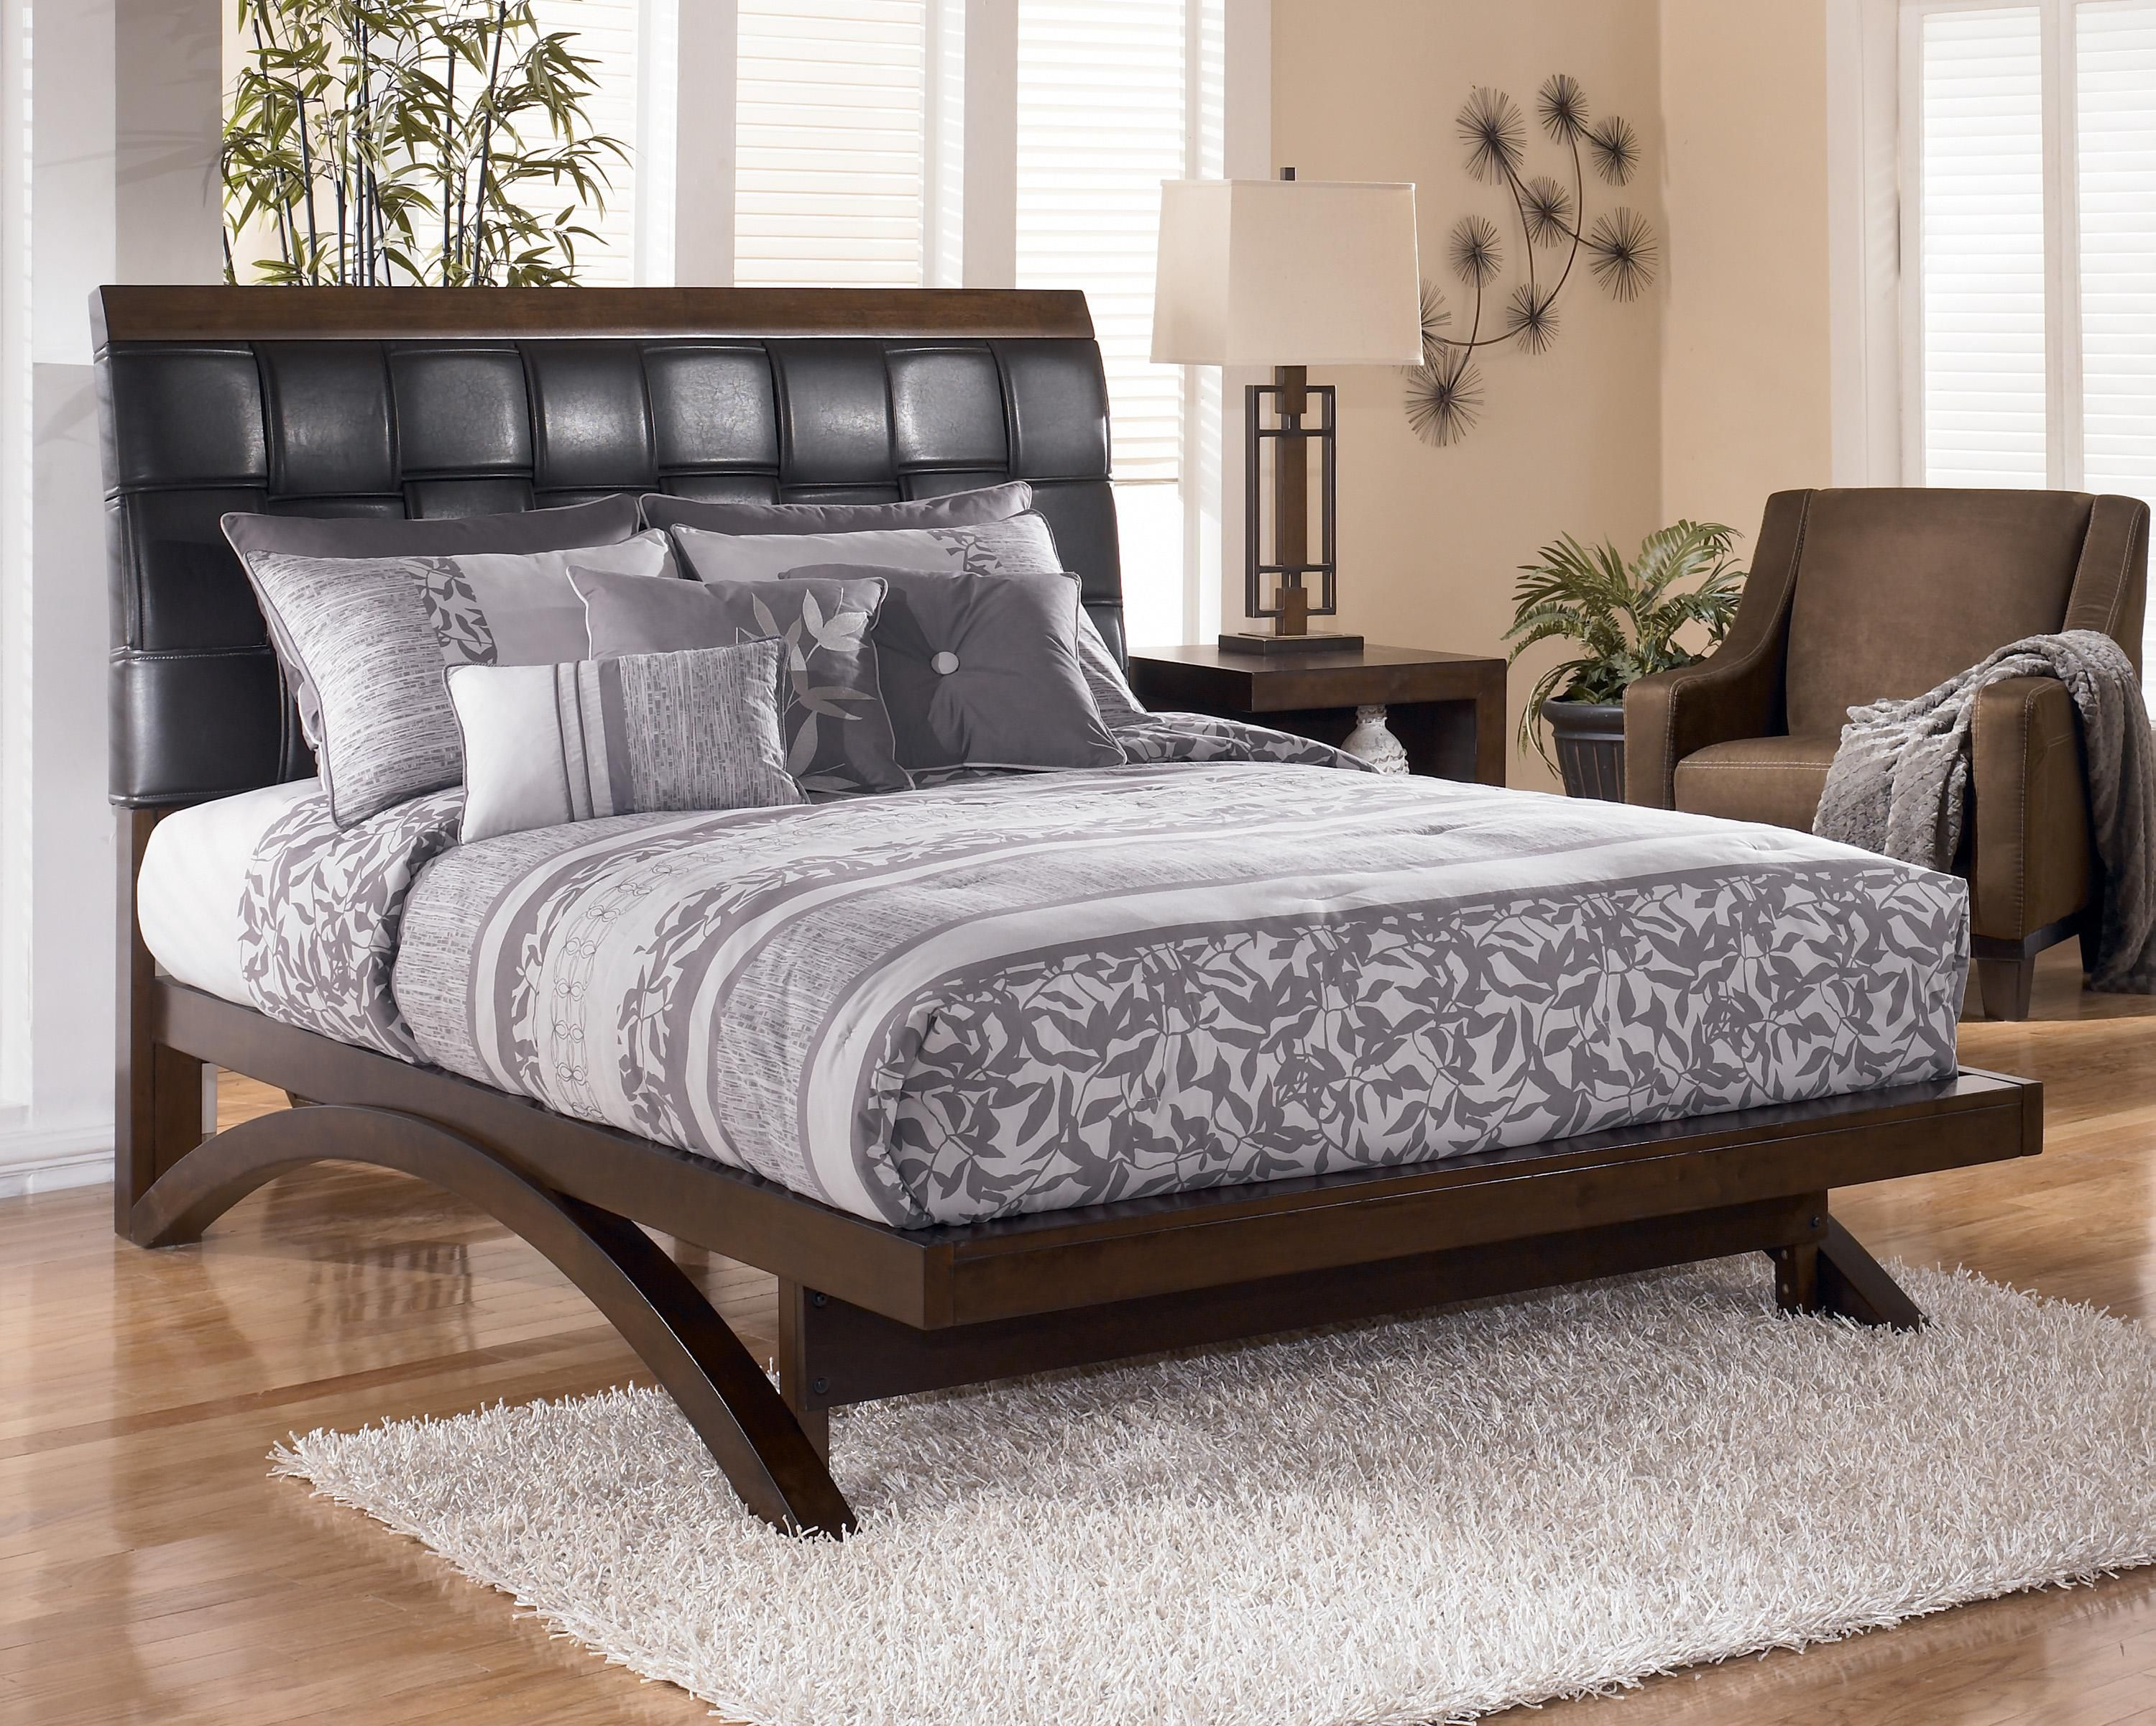 Minburn Queen Upholstered Sleigh Platform Bed by Signature